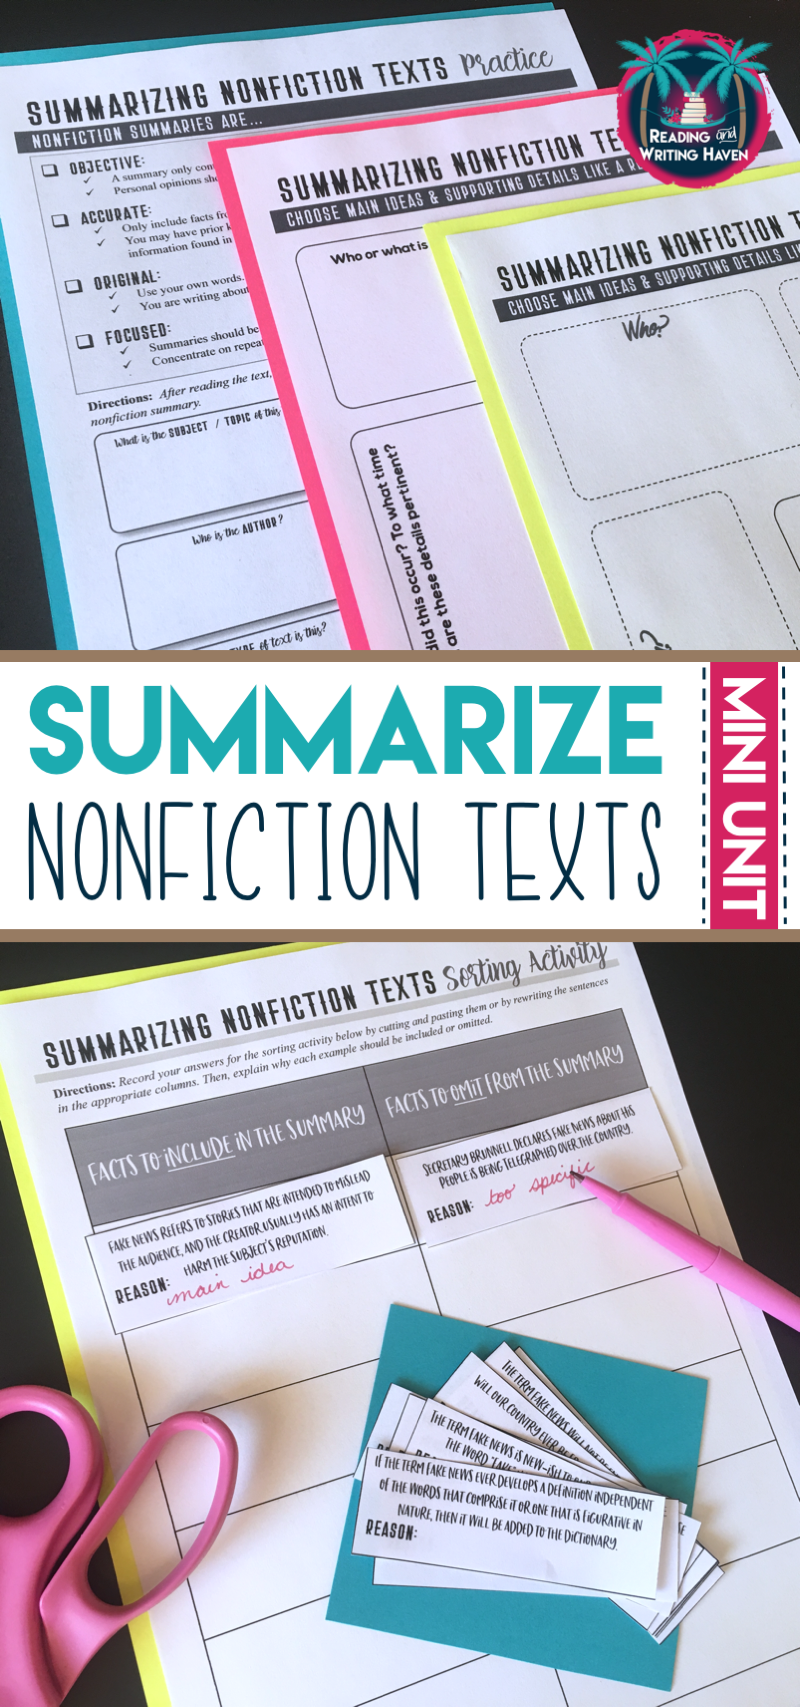 Teach students to read nonfiction texts carefully and to write effective summaries. This engaging and scaffolded mini unit from Reading and Writing Haven will help students to summarize non-narrative nonfiction and informational texts. #informationaltext #highschoolenglish